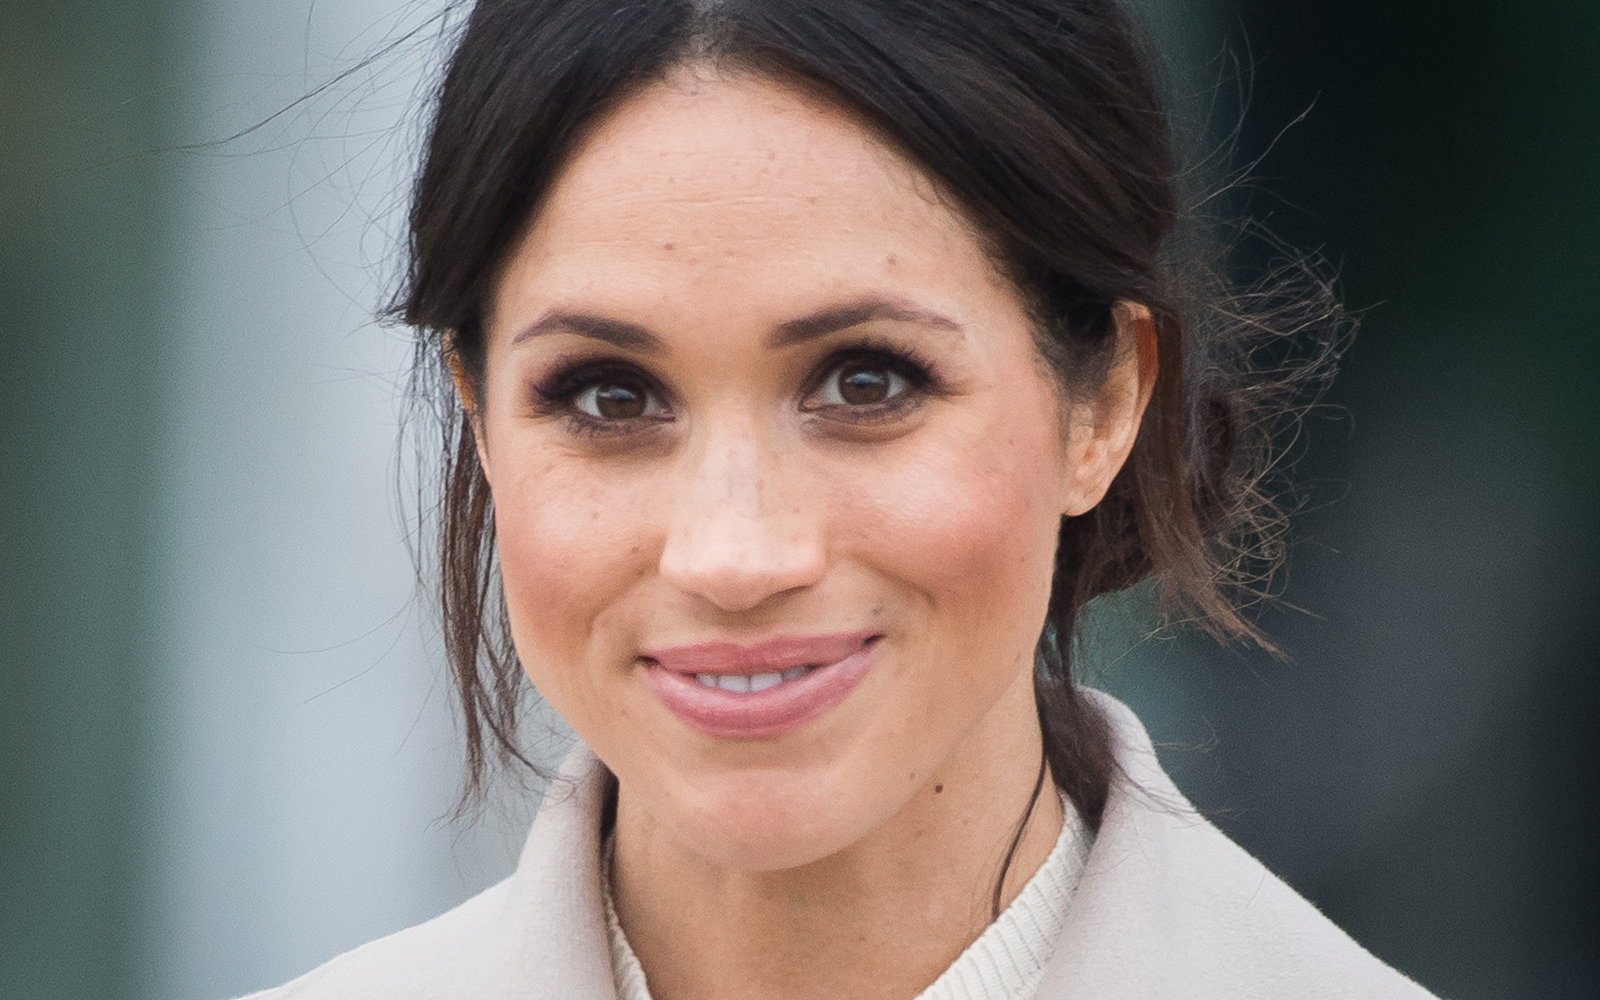 Meghan Markle's Favorite Lipstick Was Inspired by Victoria Beckham